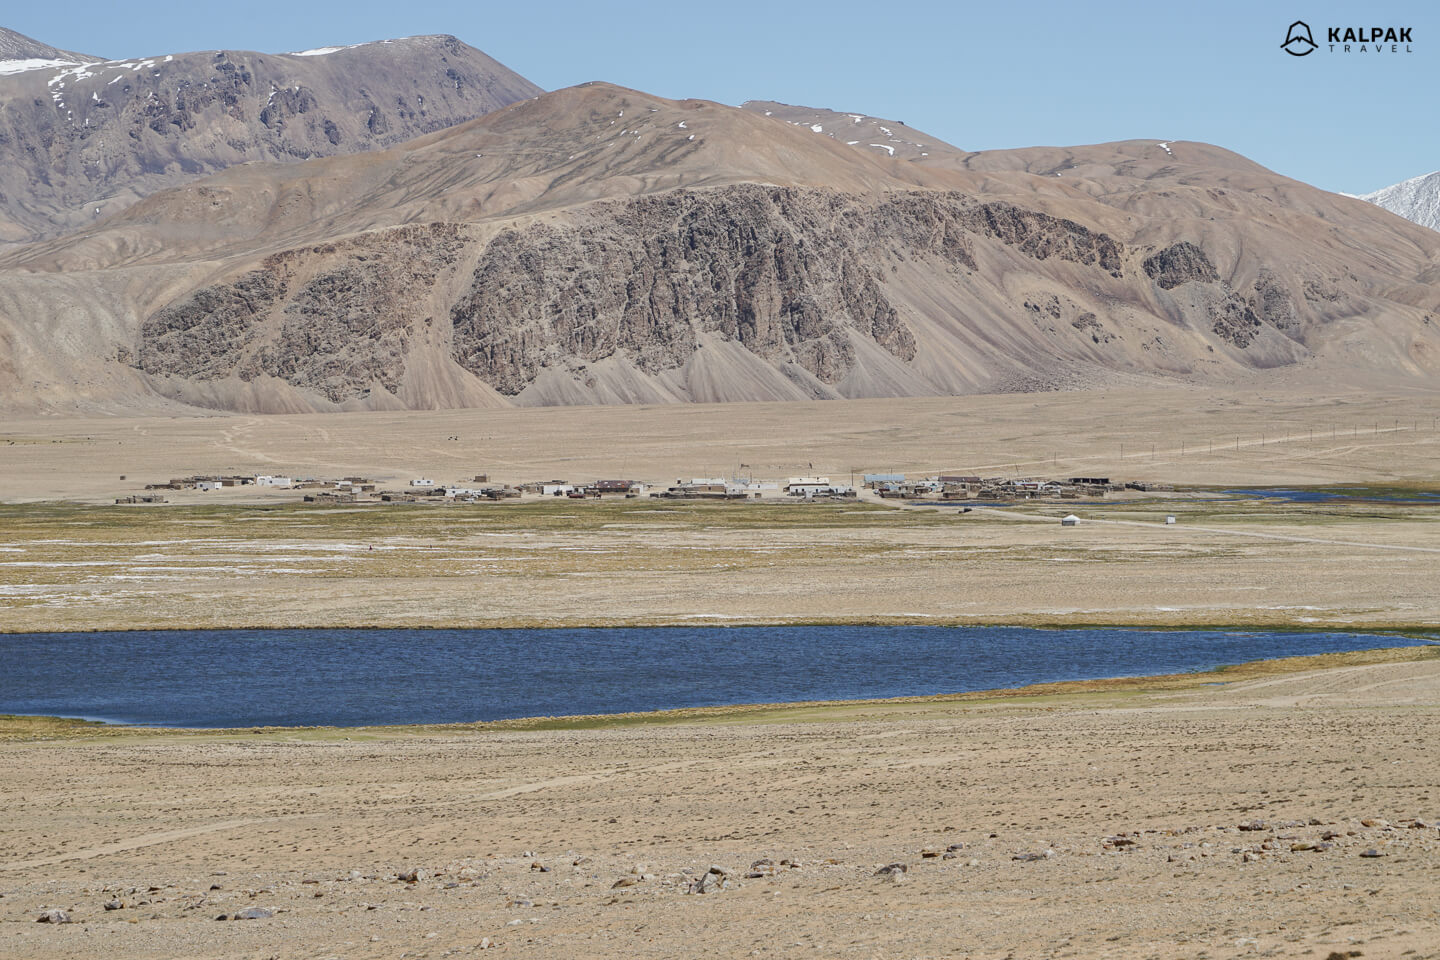 Pamir Highway village called Bulunkul at the lakeside